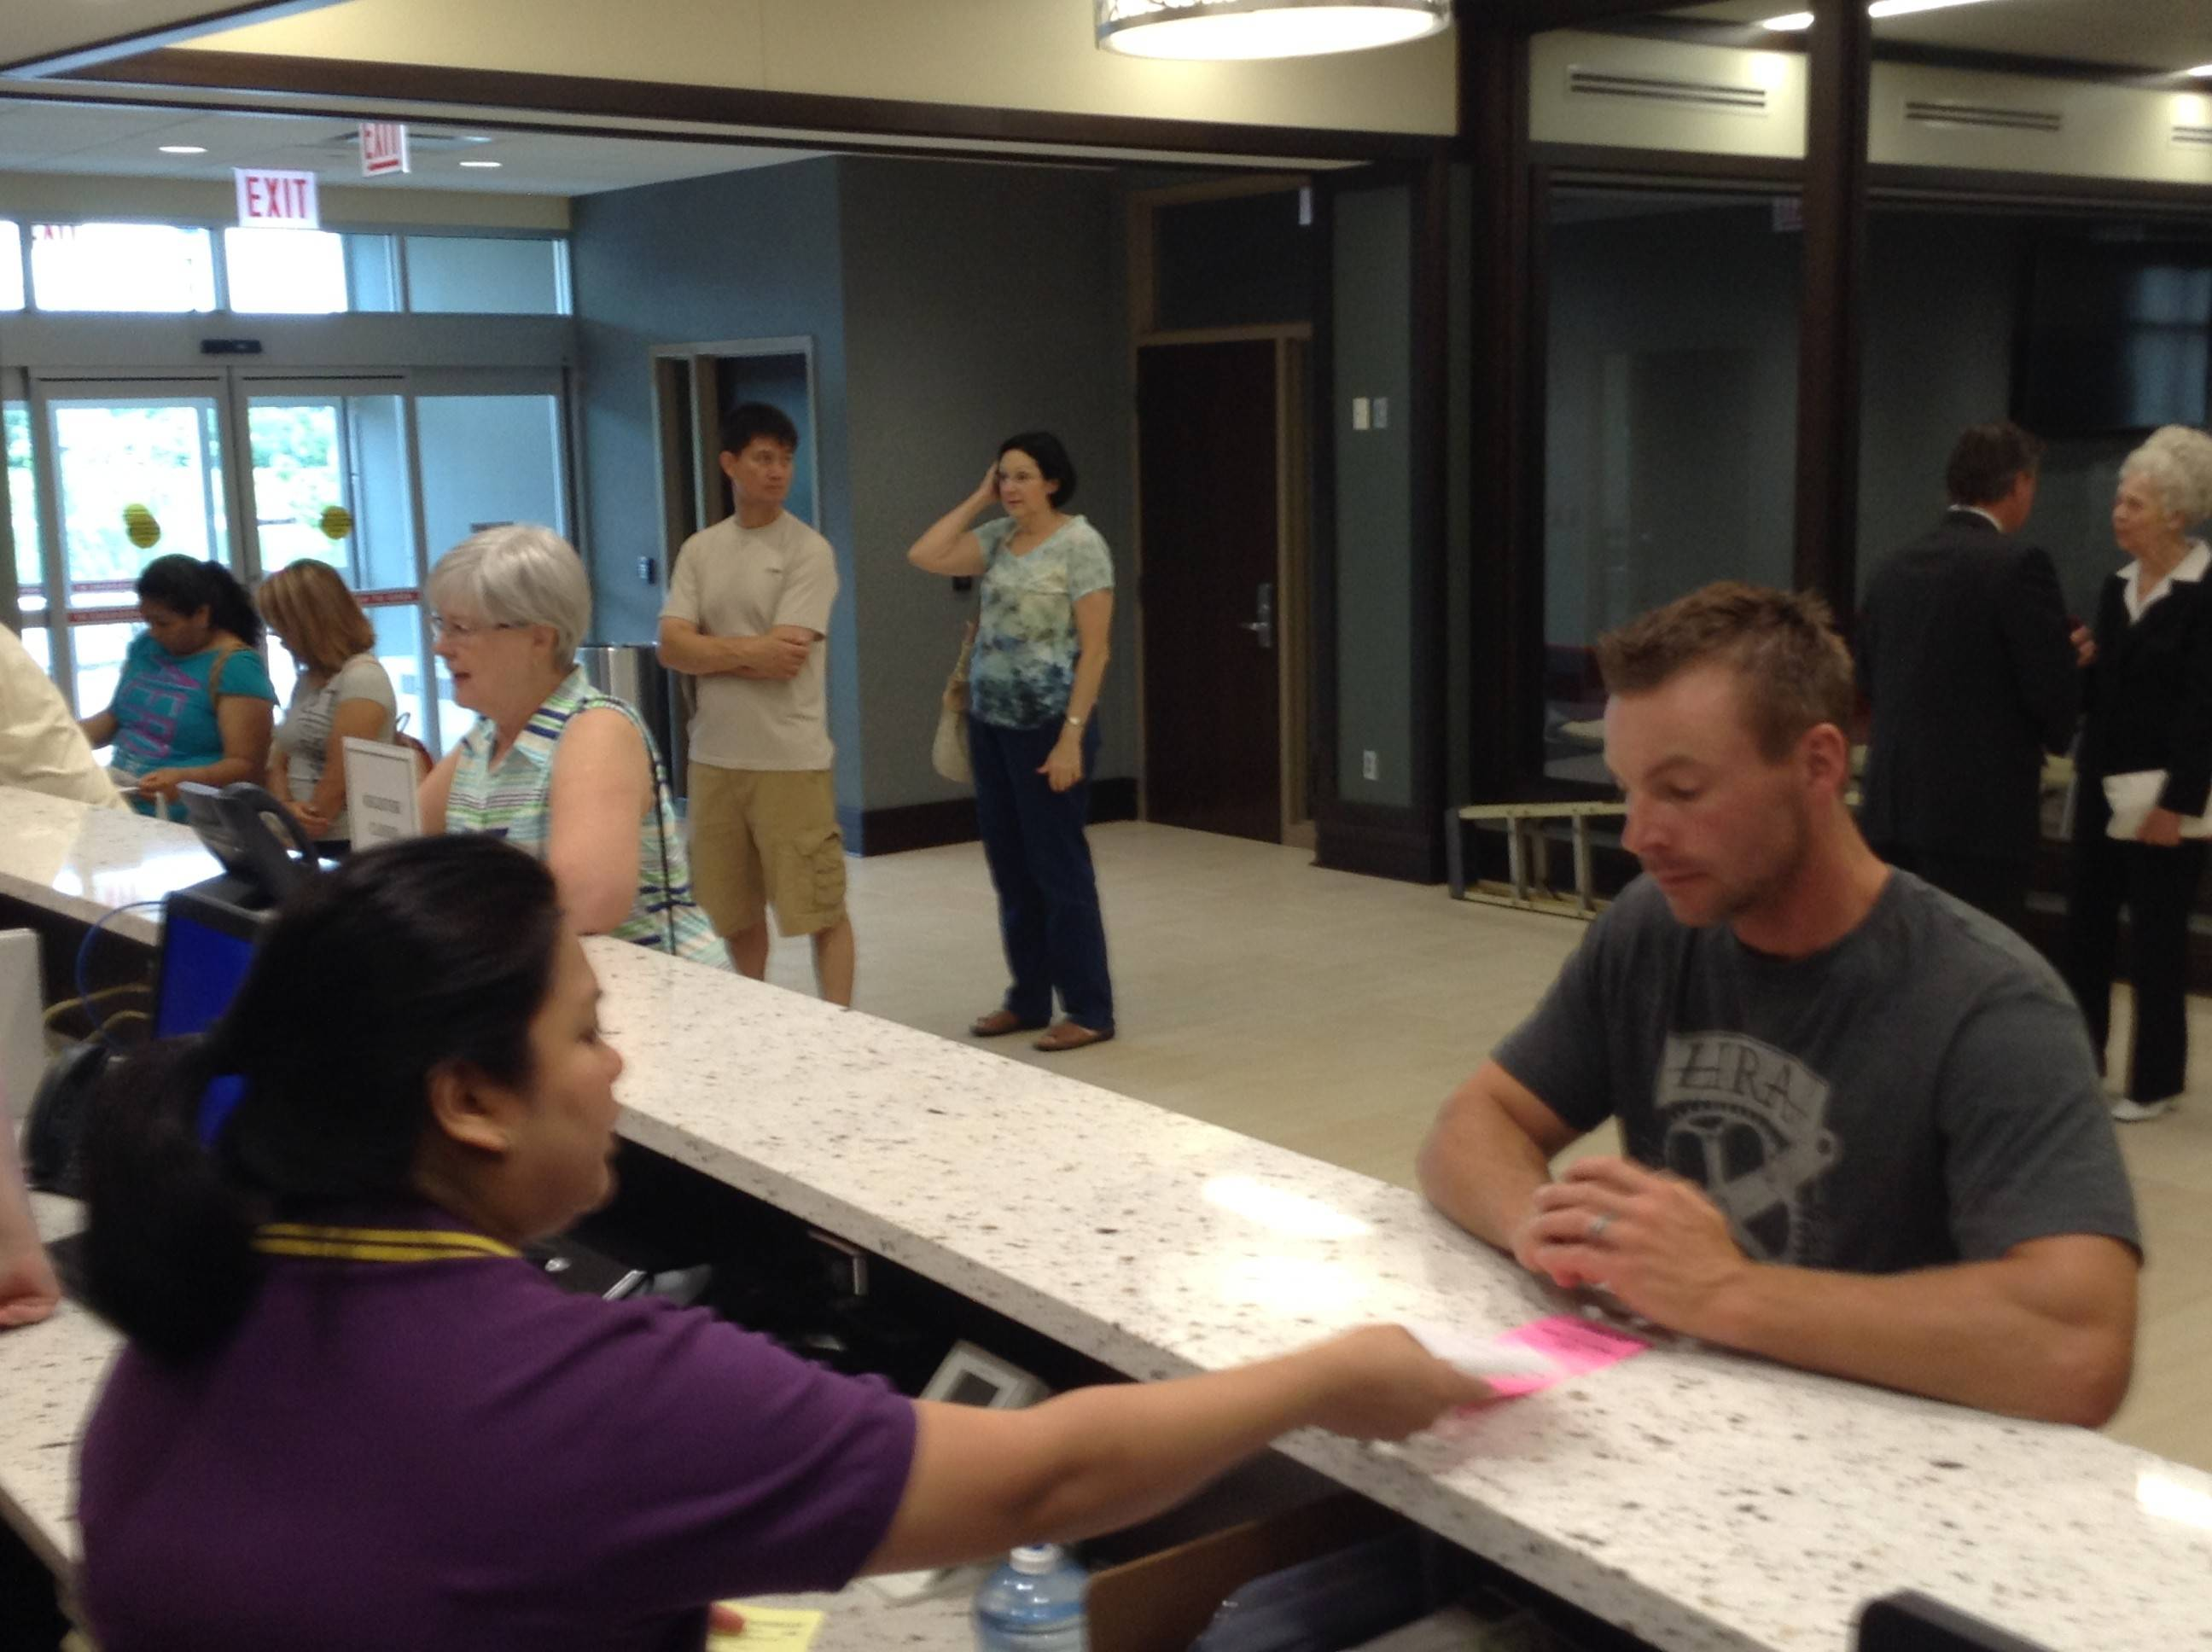 New Mundelein village hall opens